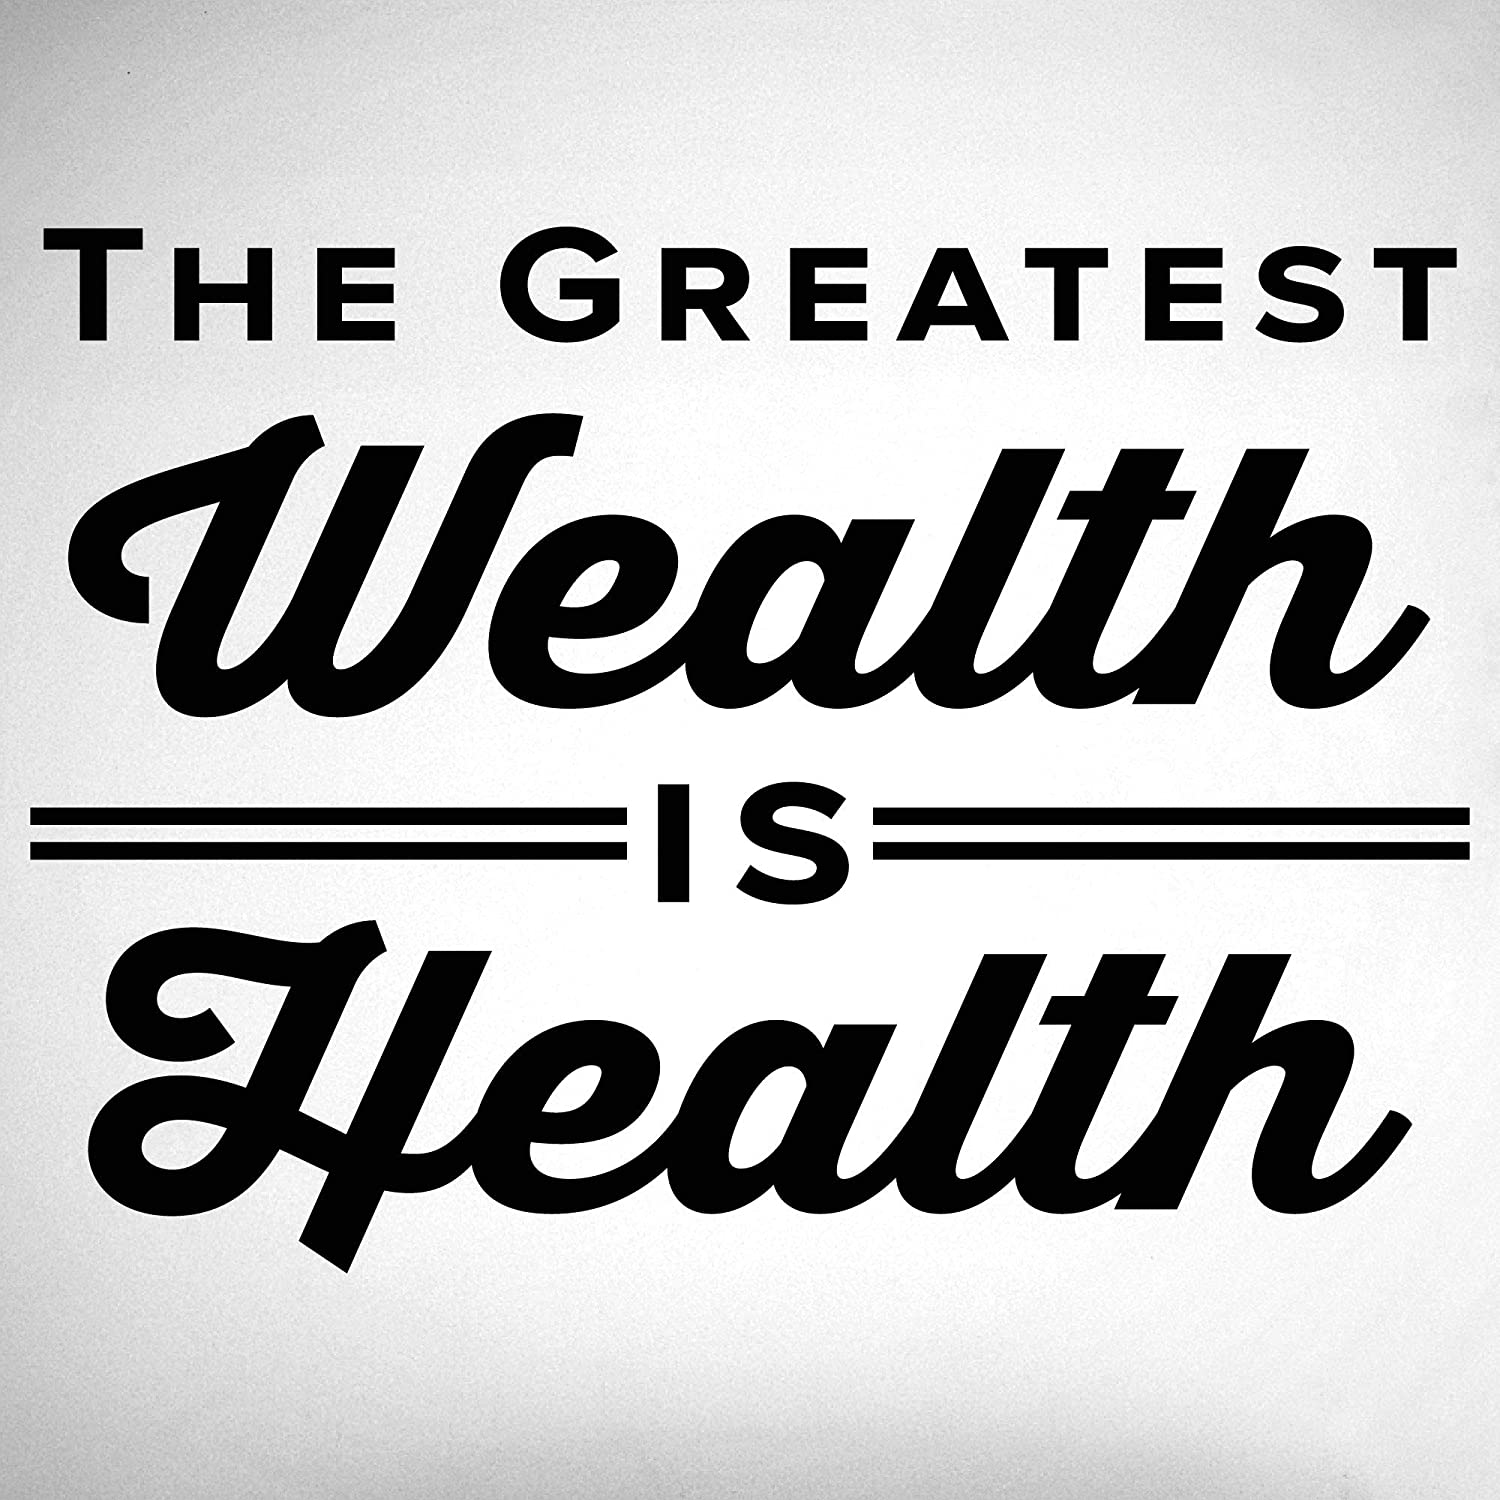 The Greatest Wealth Is Health. - 0310 - Home Decor - Wall Decor - Chiropractic - Health - Wellness - Doctor